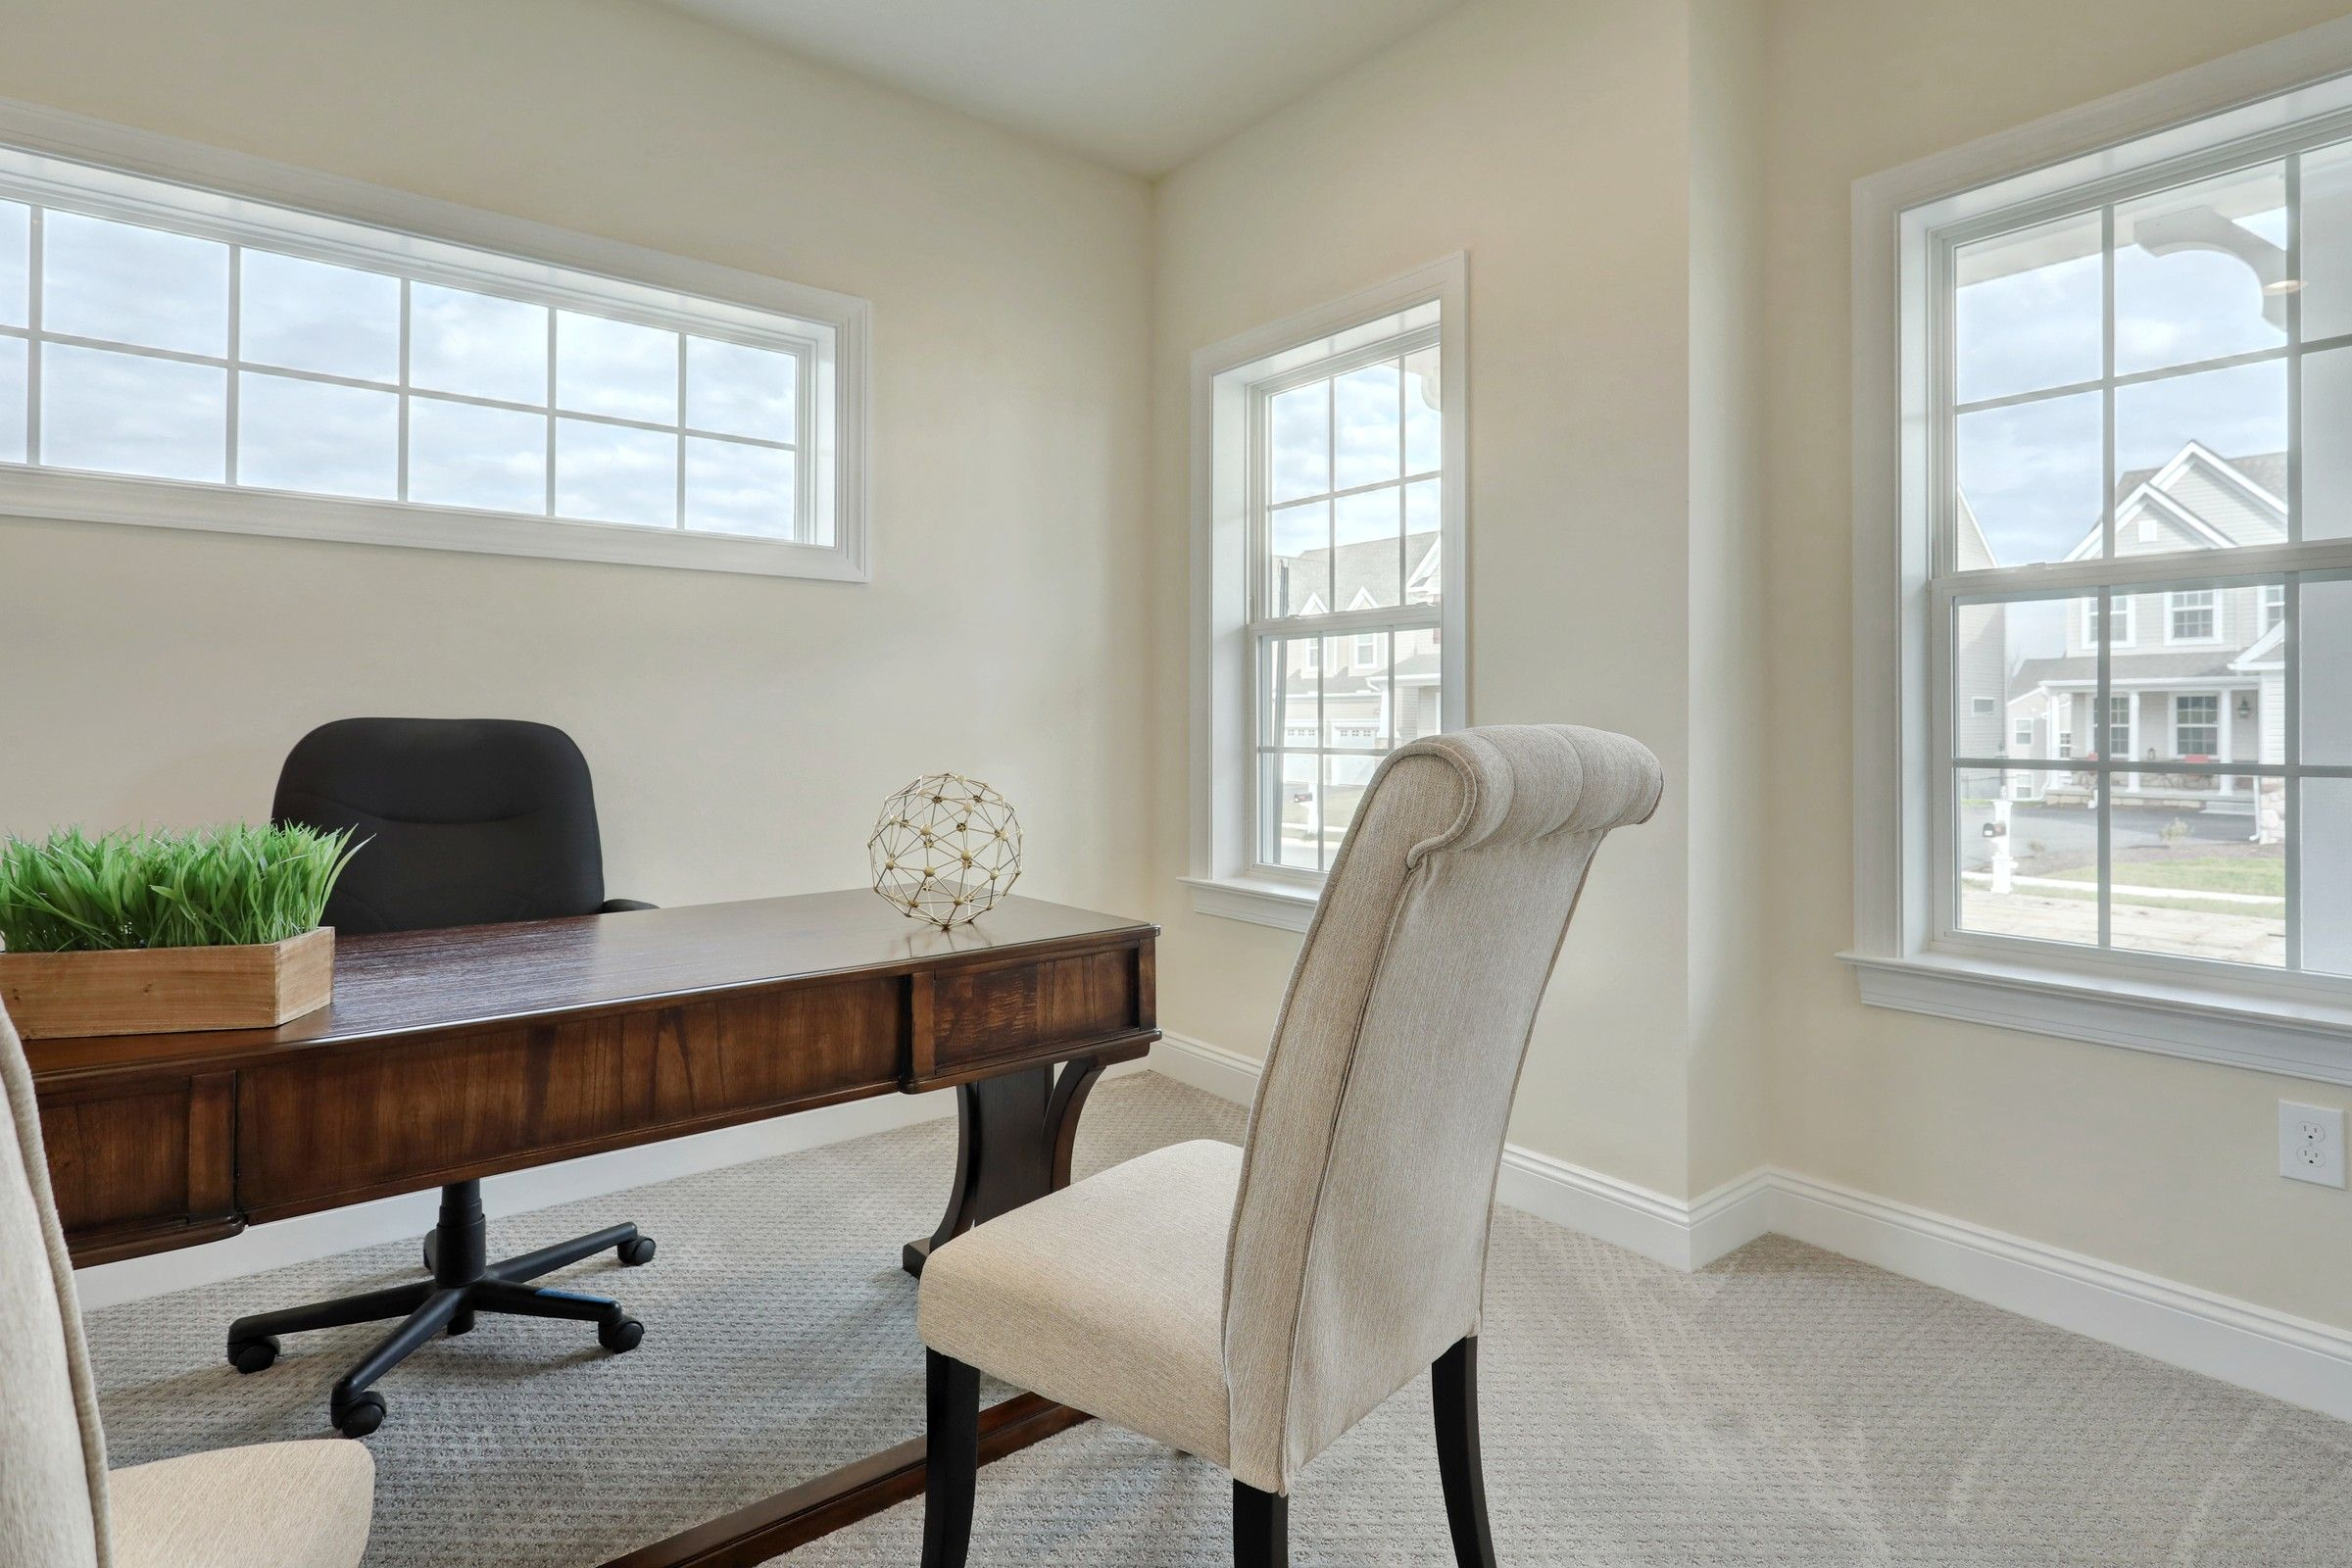 Living Area featured in the Addison Farmhouse By Keystone Custom Homes in Philadelphia, PA